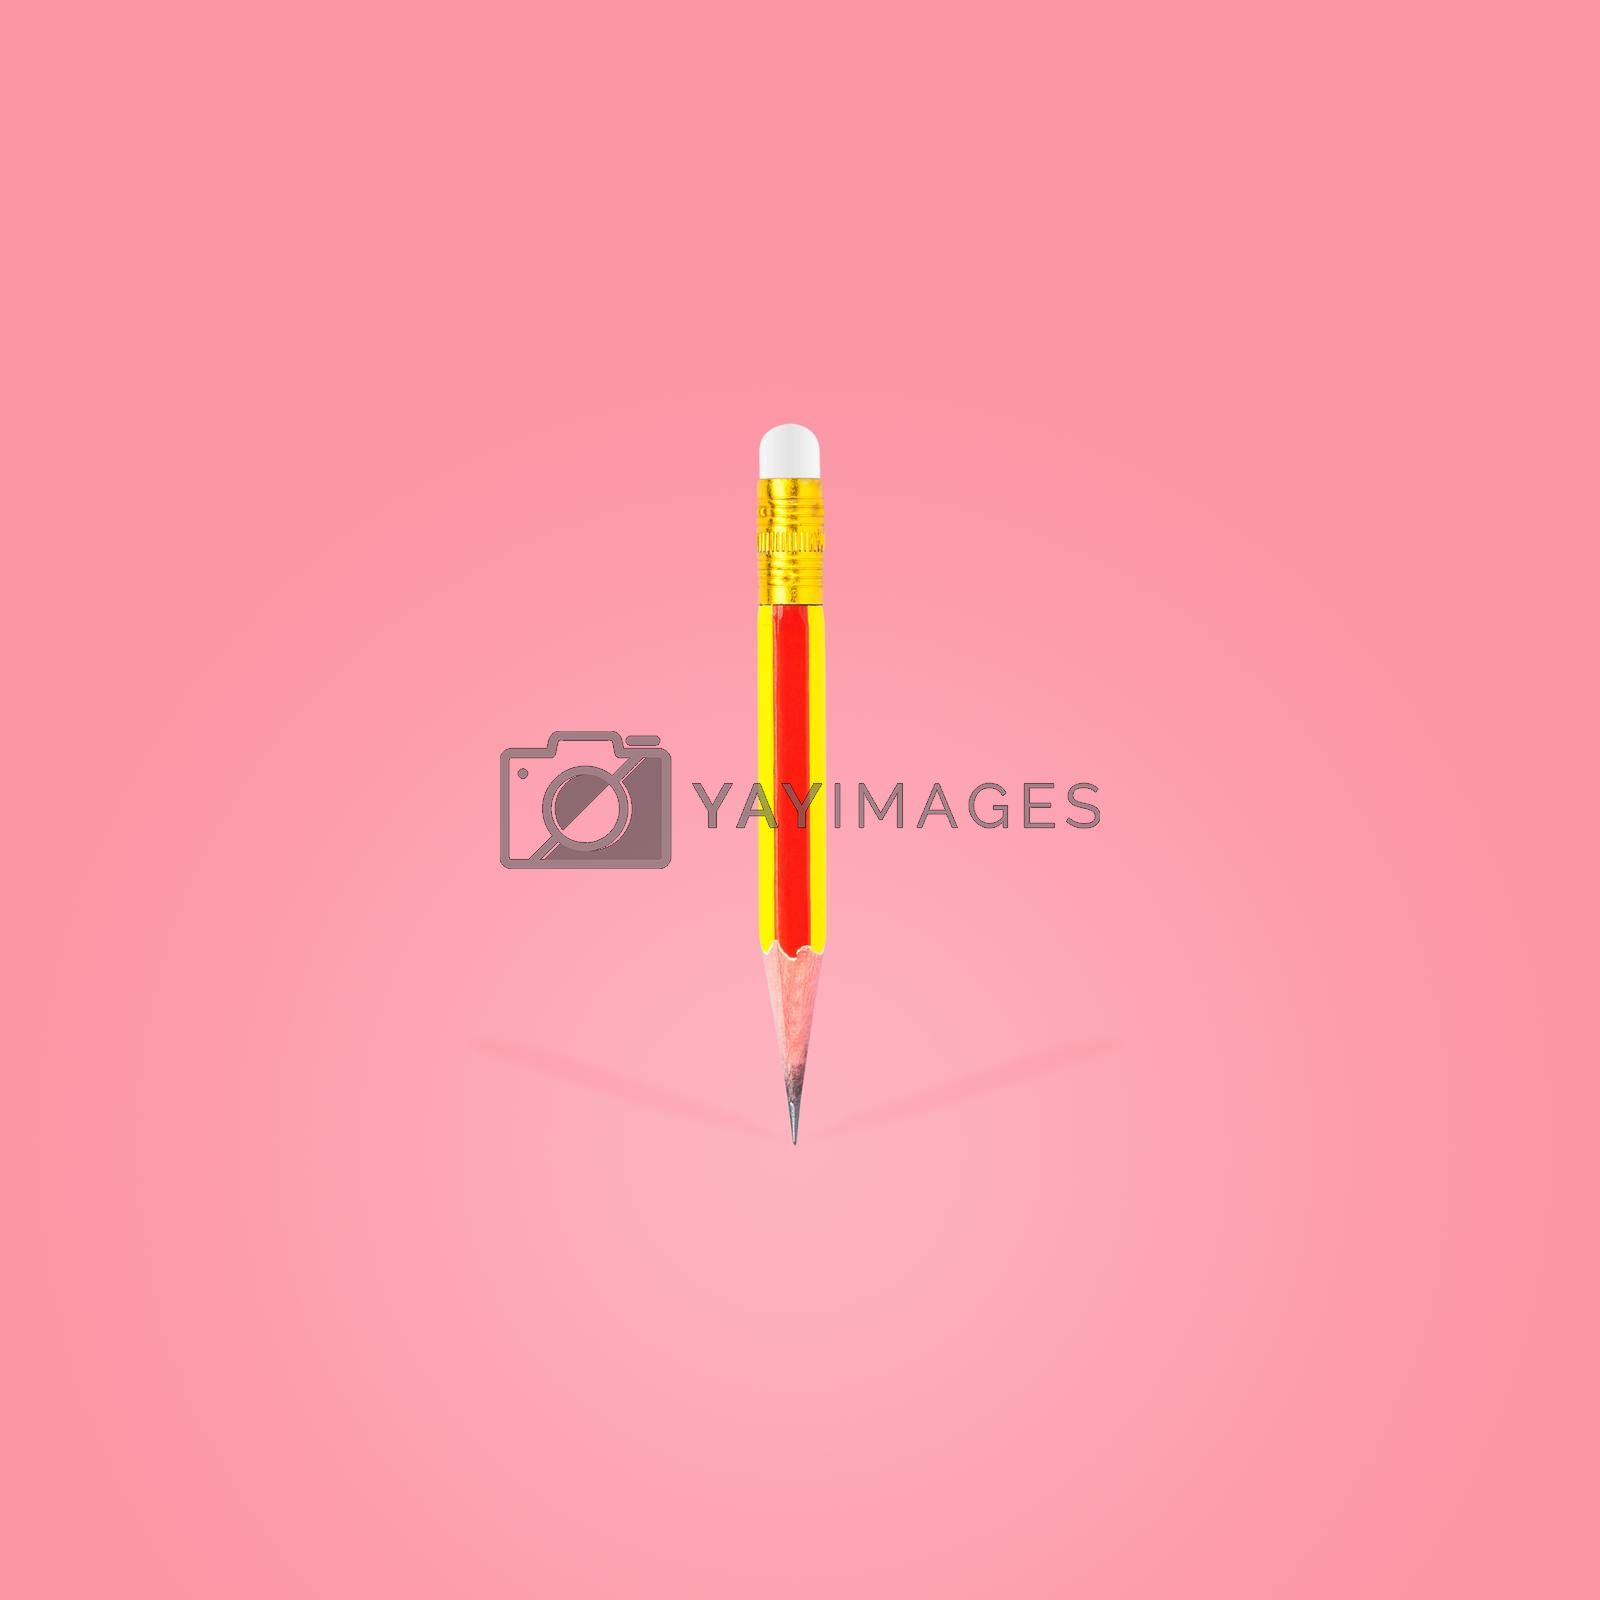 Short-sharpened wooden pencil and eraser isolated on beautiful pastel color background, with clipping path.